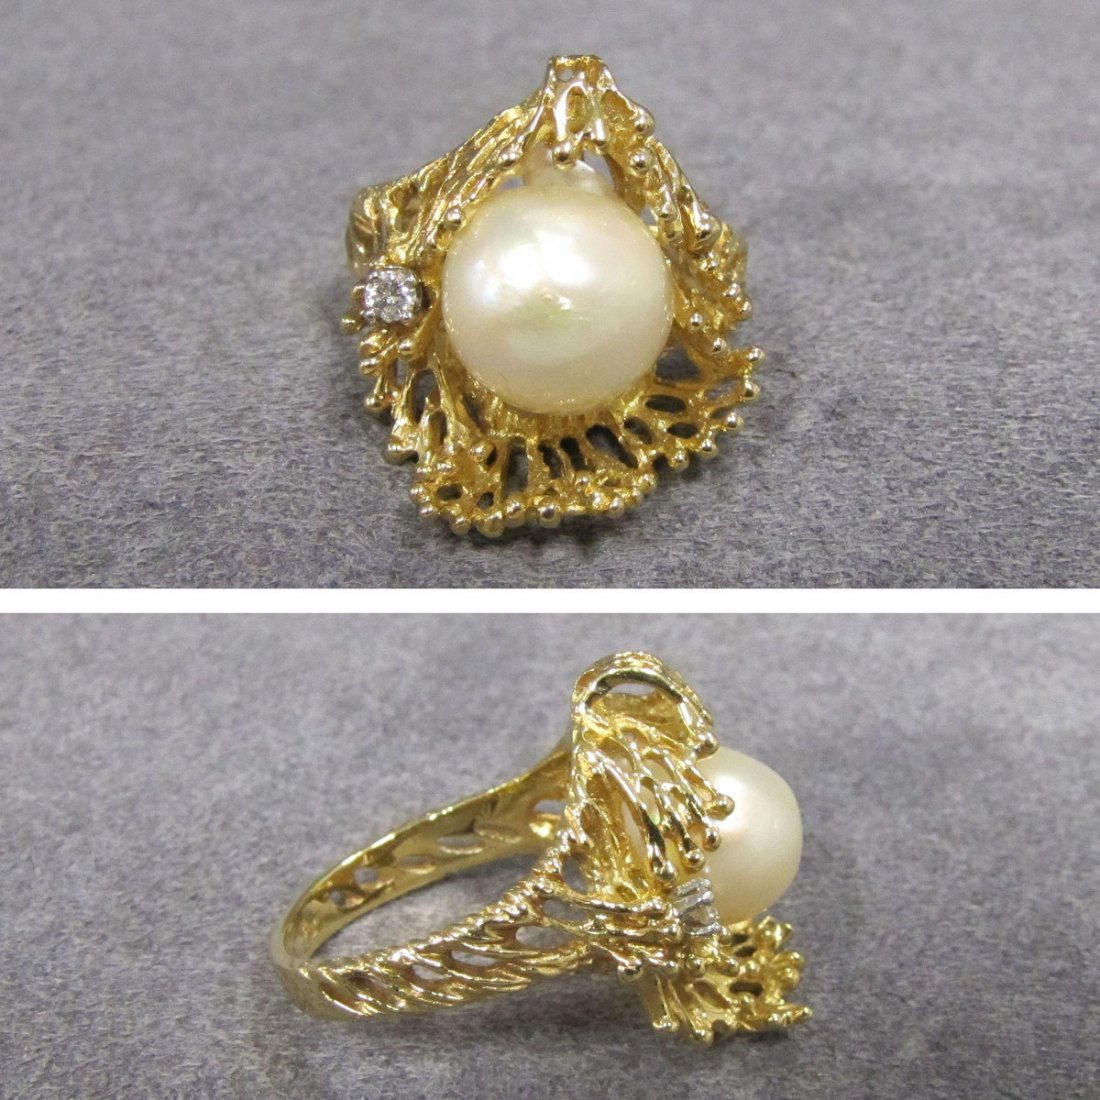 14K YELLOW GOLD RING SET WITH 9.32 BLISTER PEARL